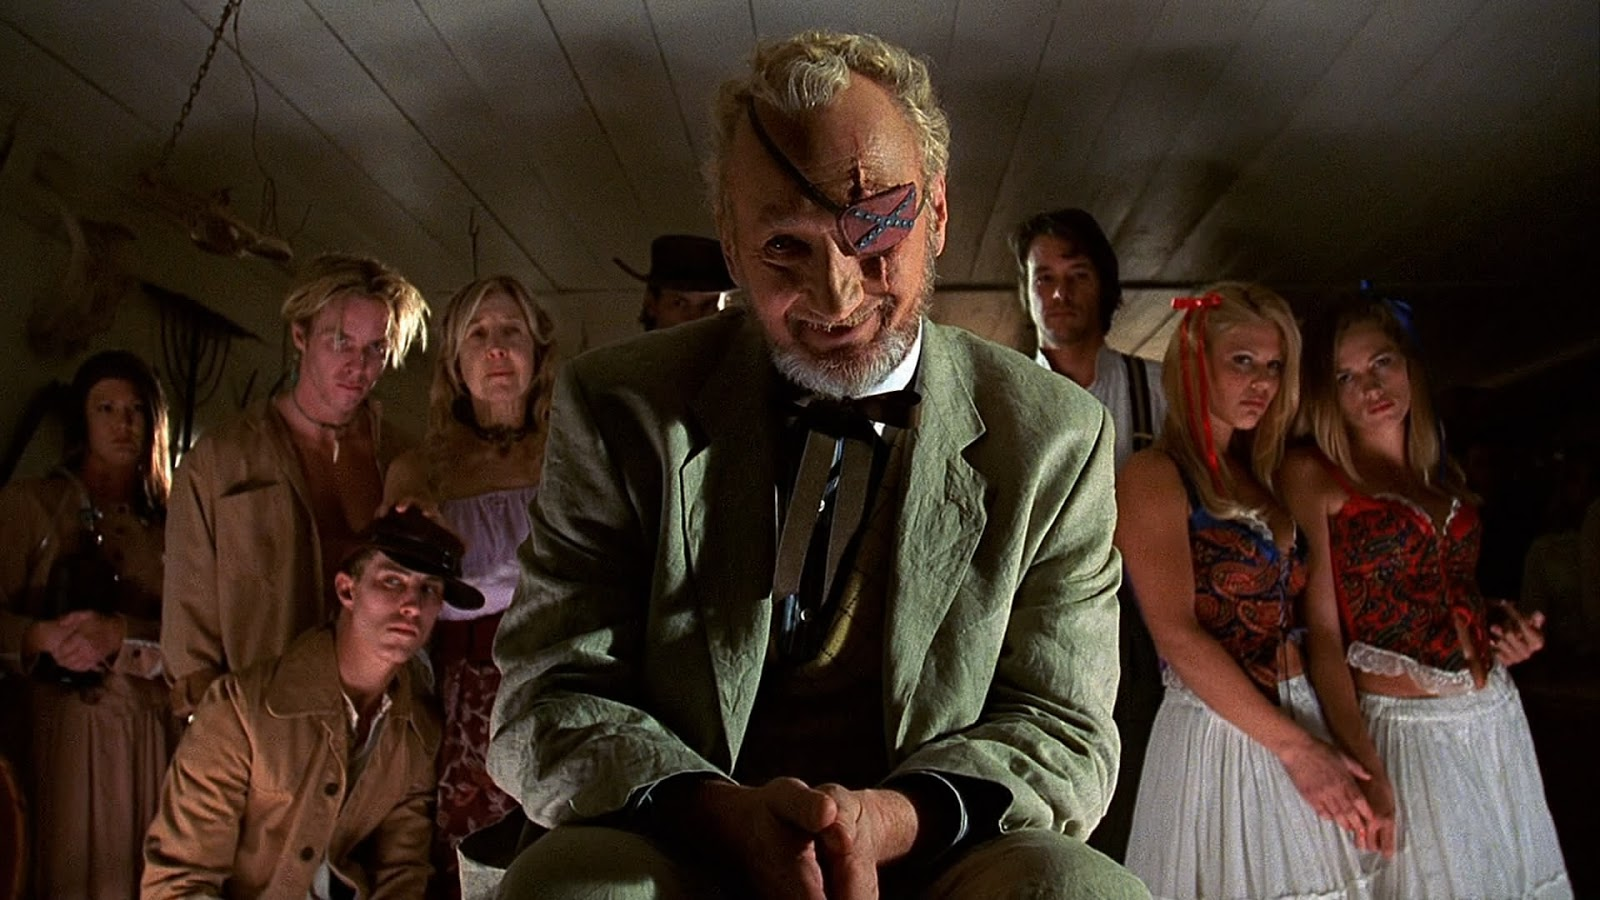 Robert Englund as the mayor in 2001 Maniacs (2005)